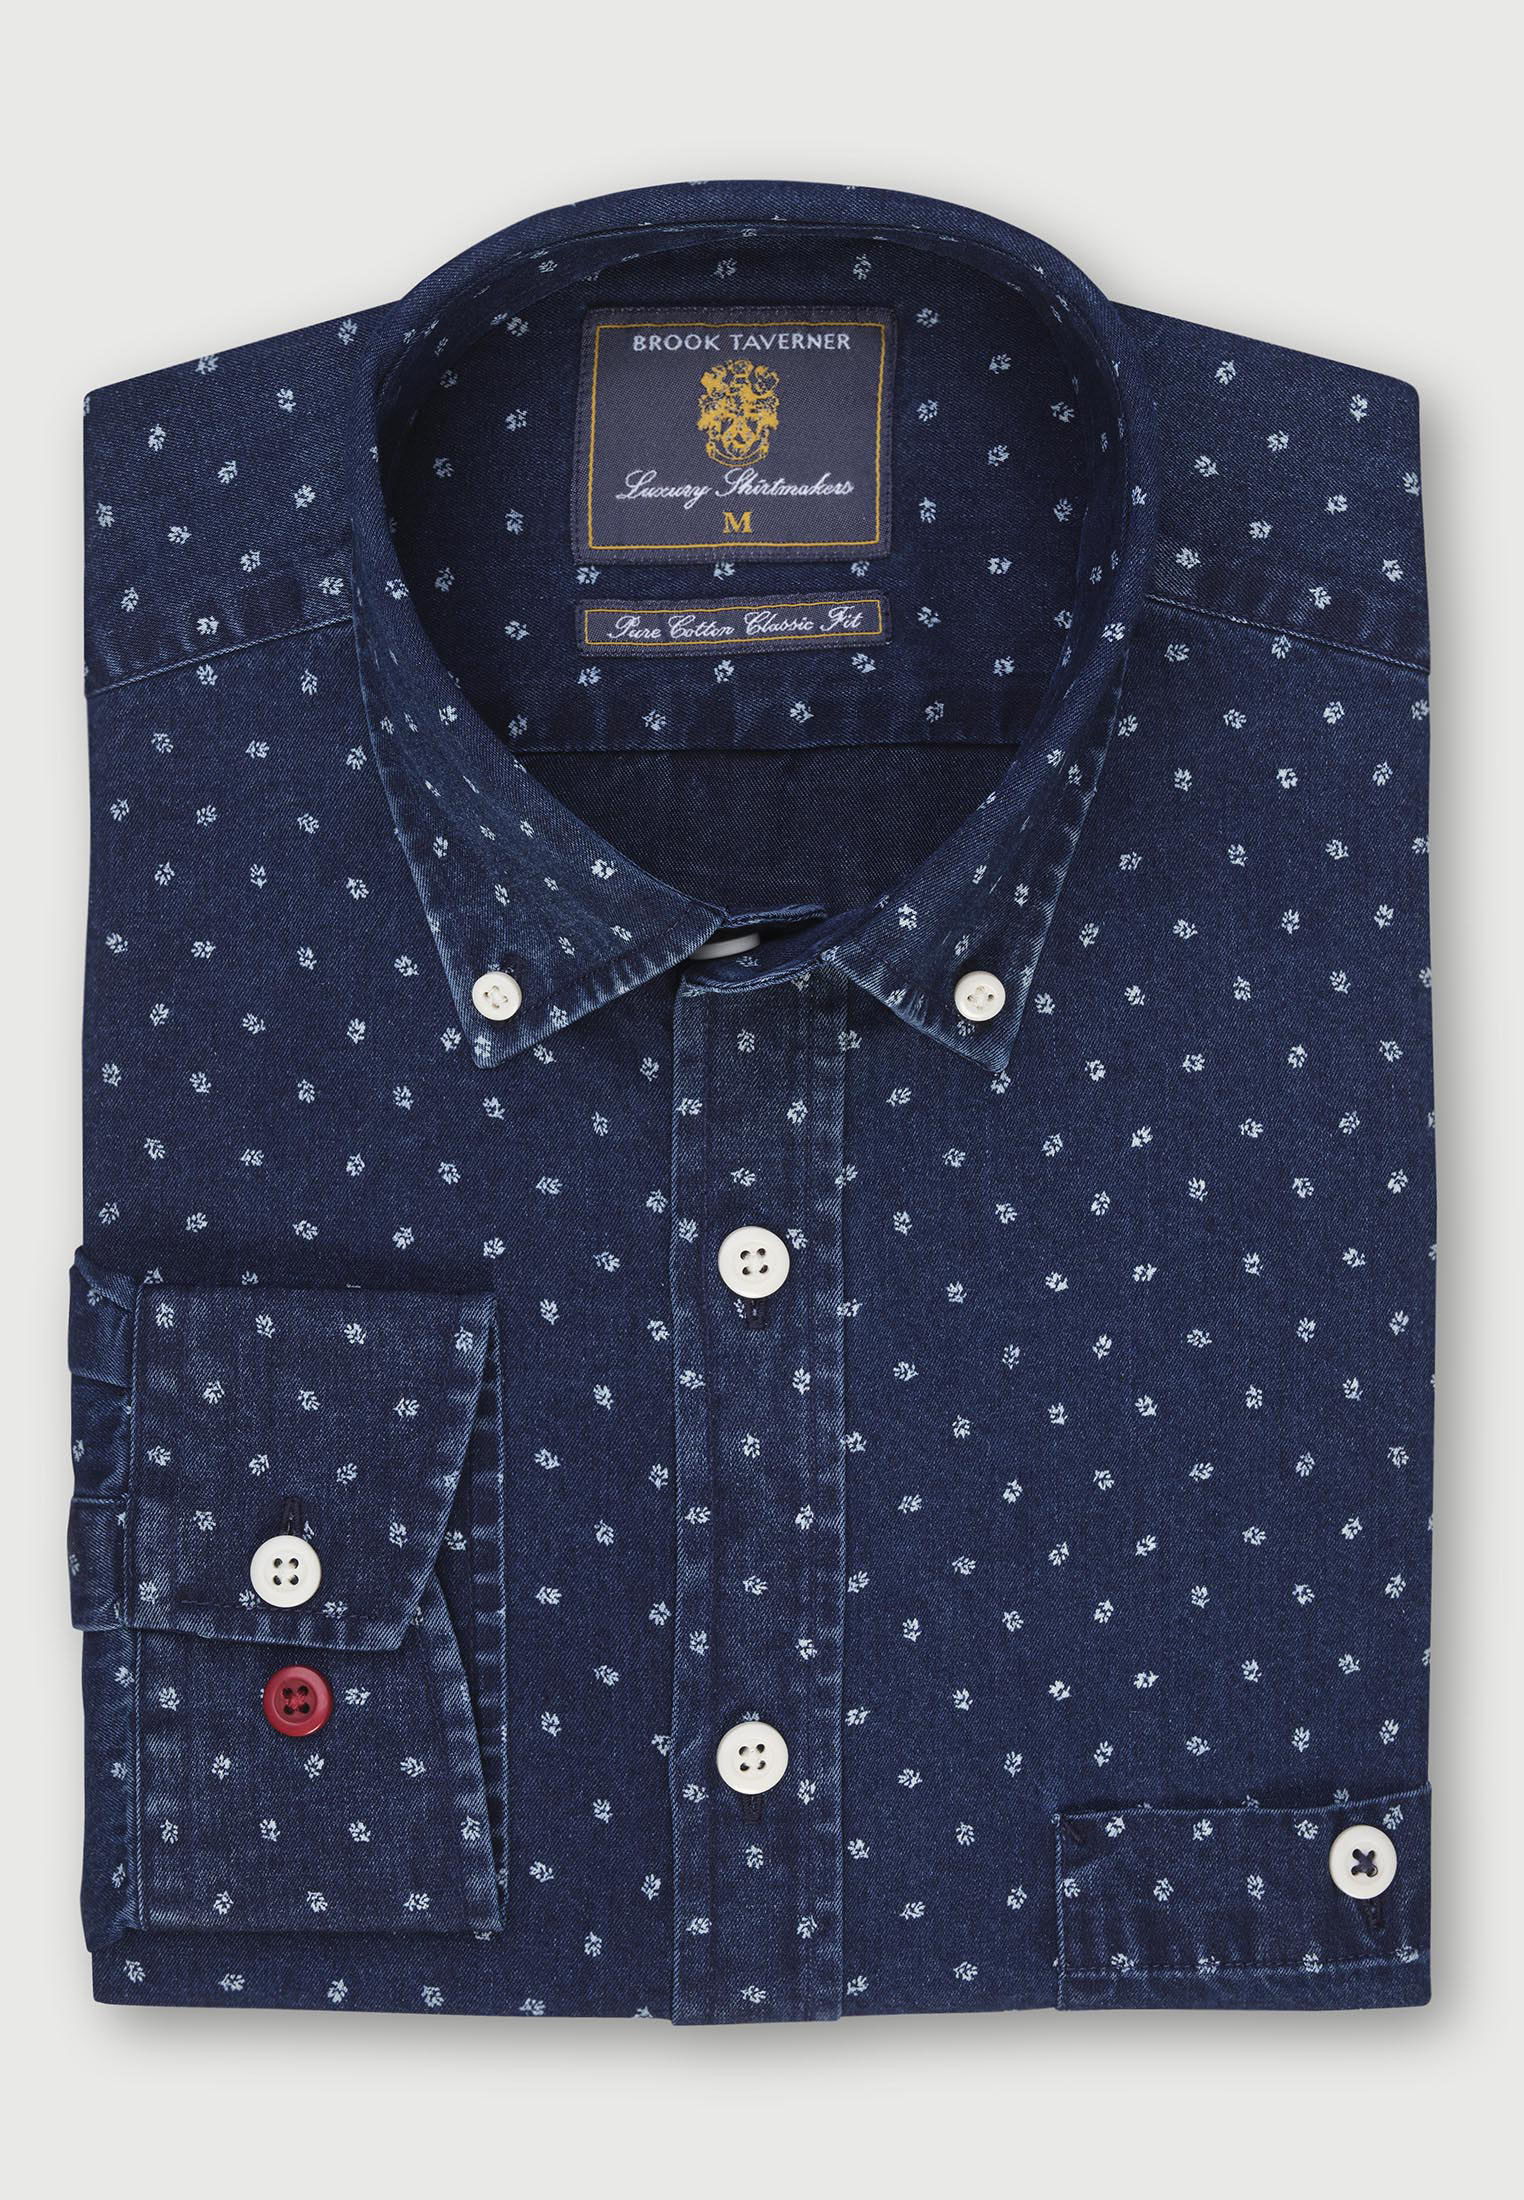 Classic and Tailored Fit Navy with Neat Flower Print 'Super Soft' Chambray Shirt